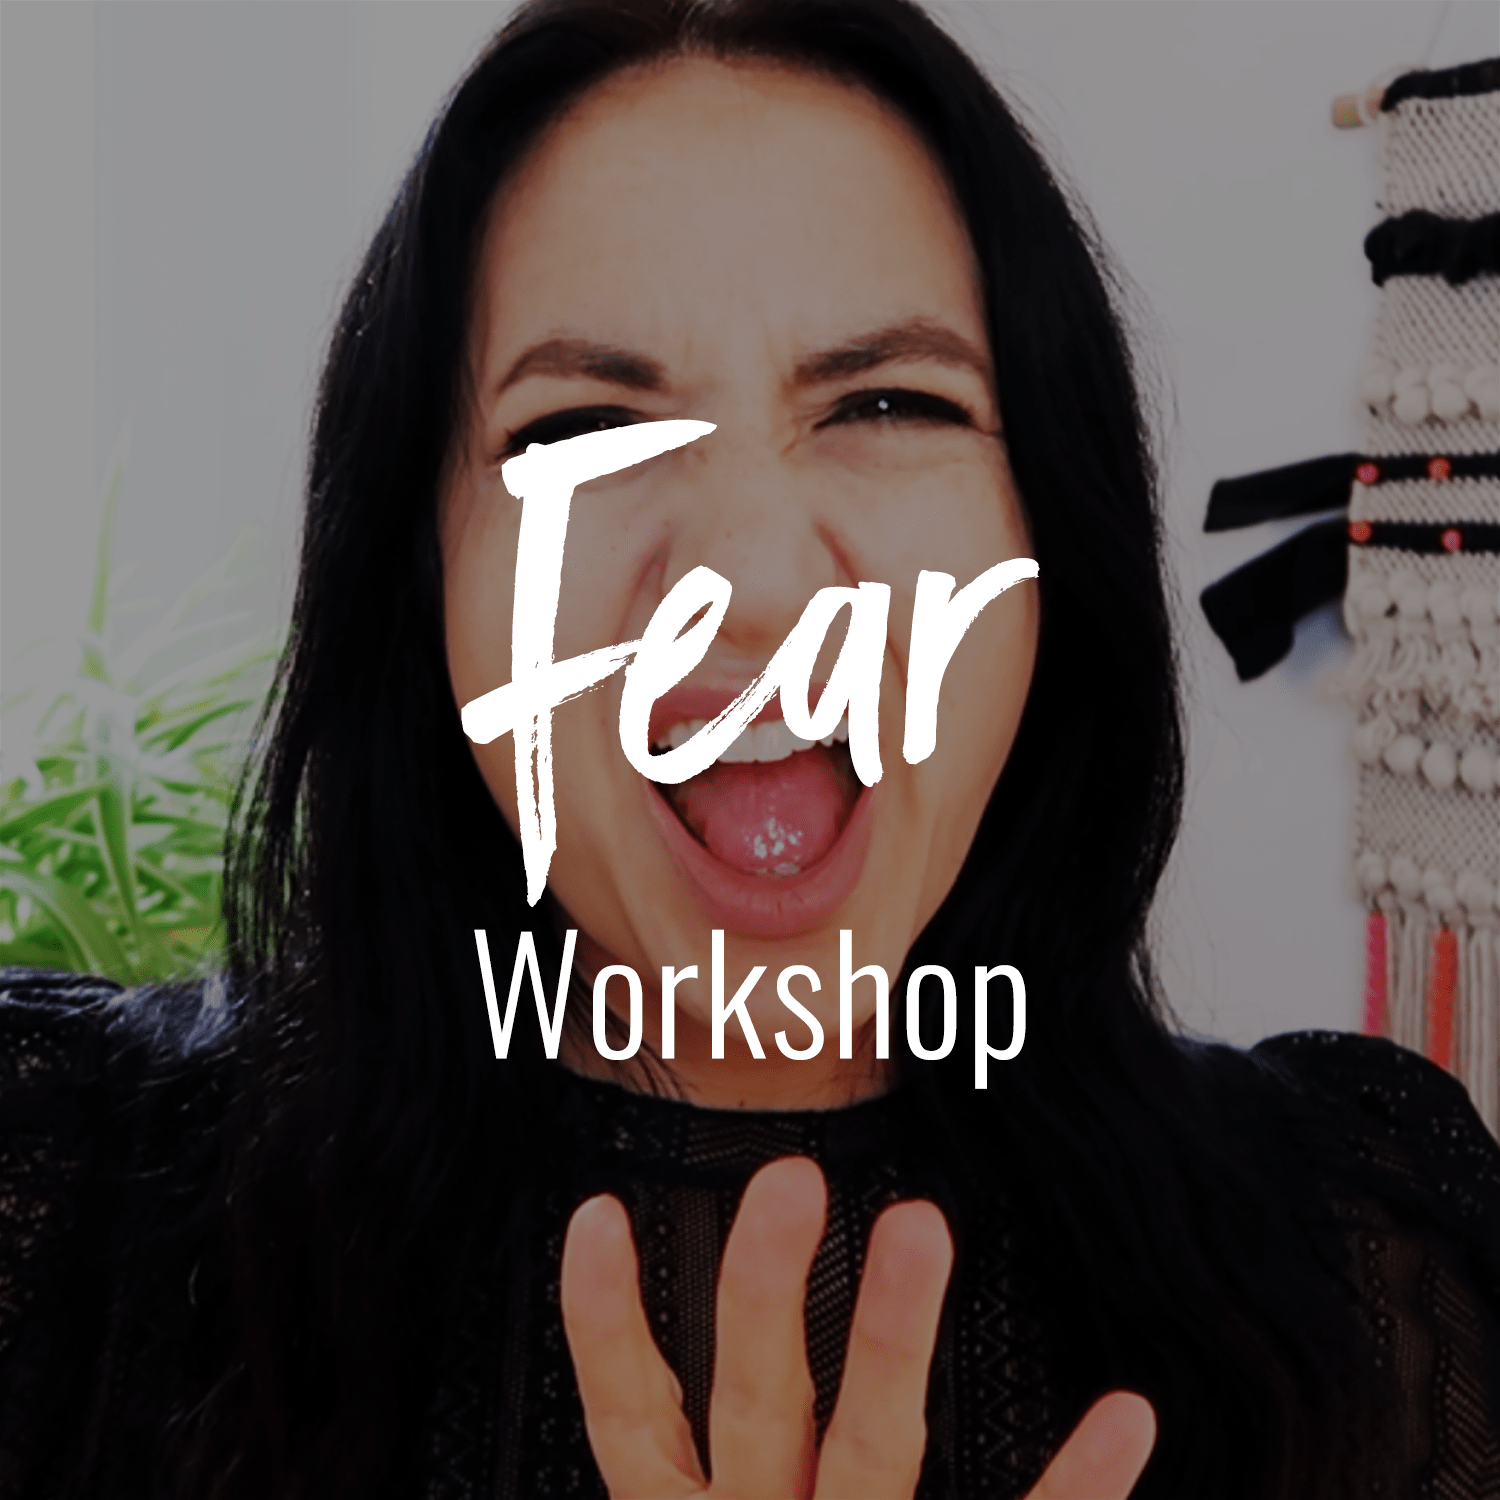 The Fear Workshop